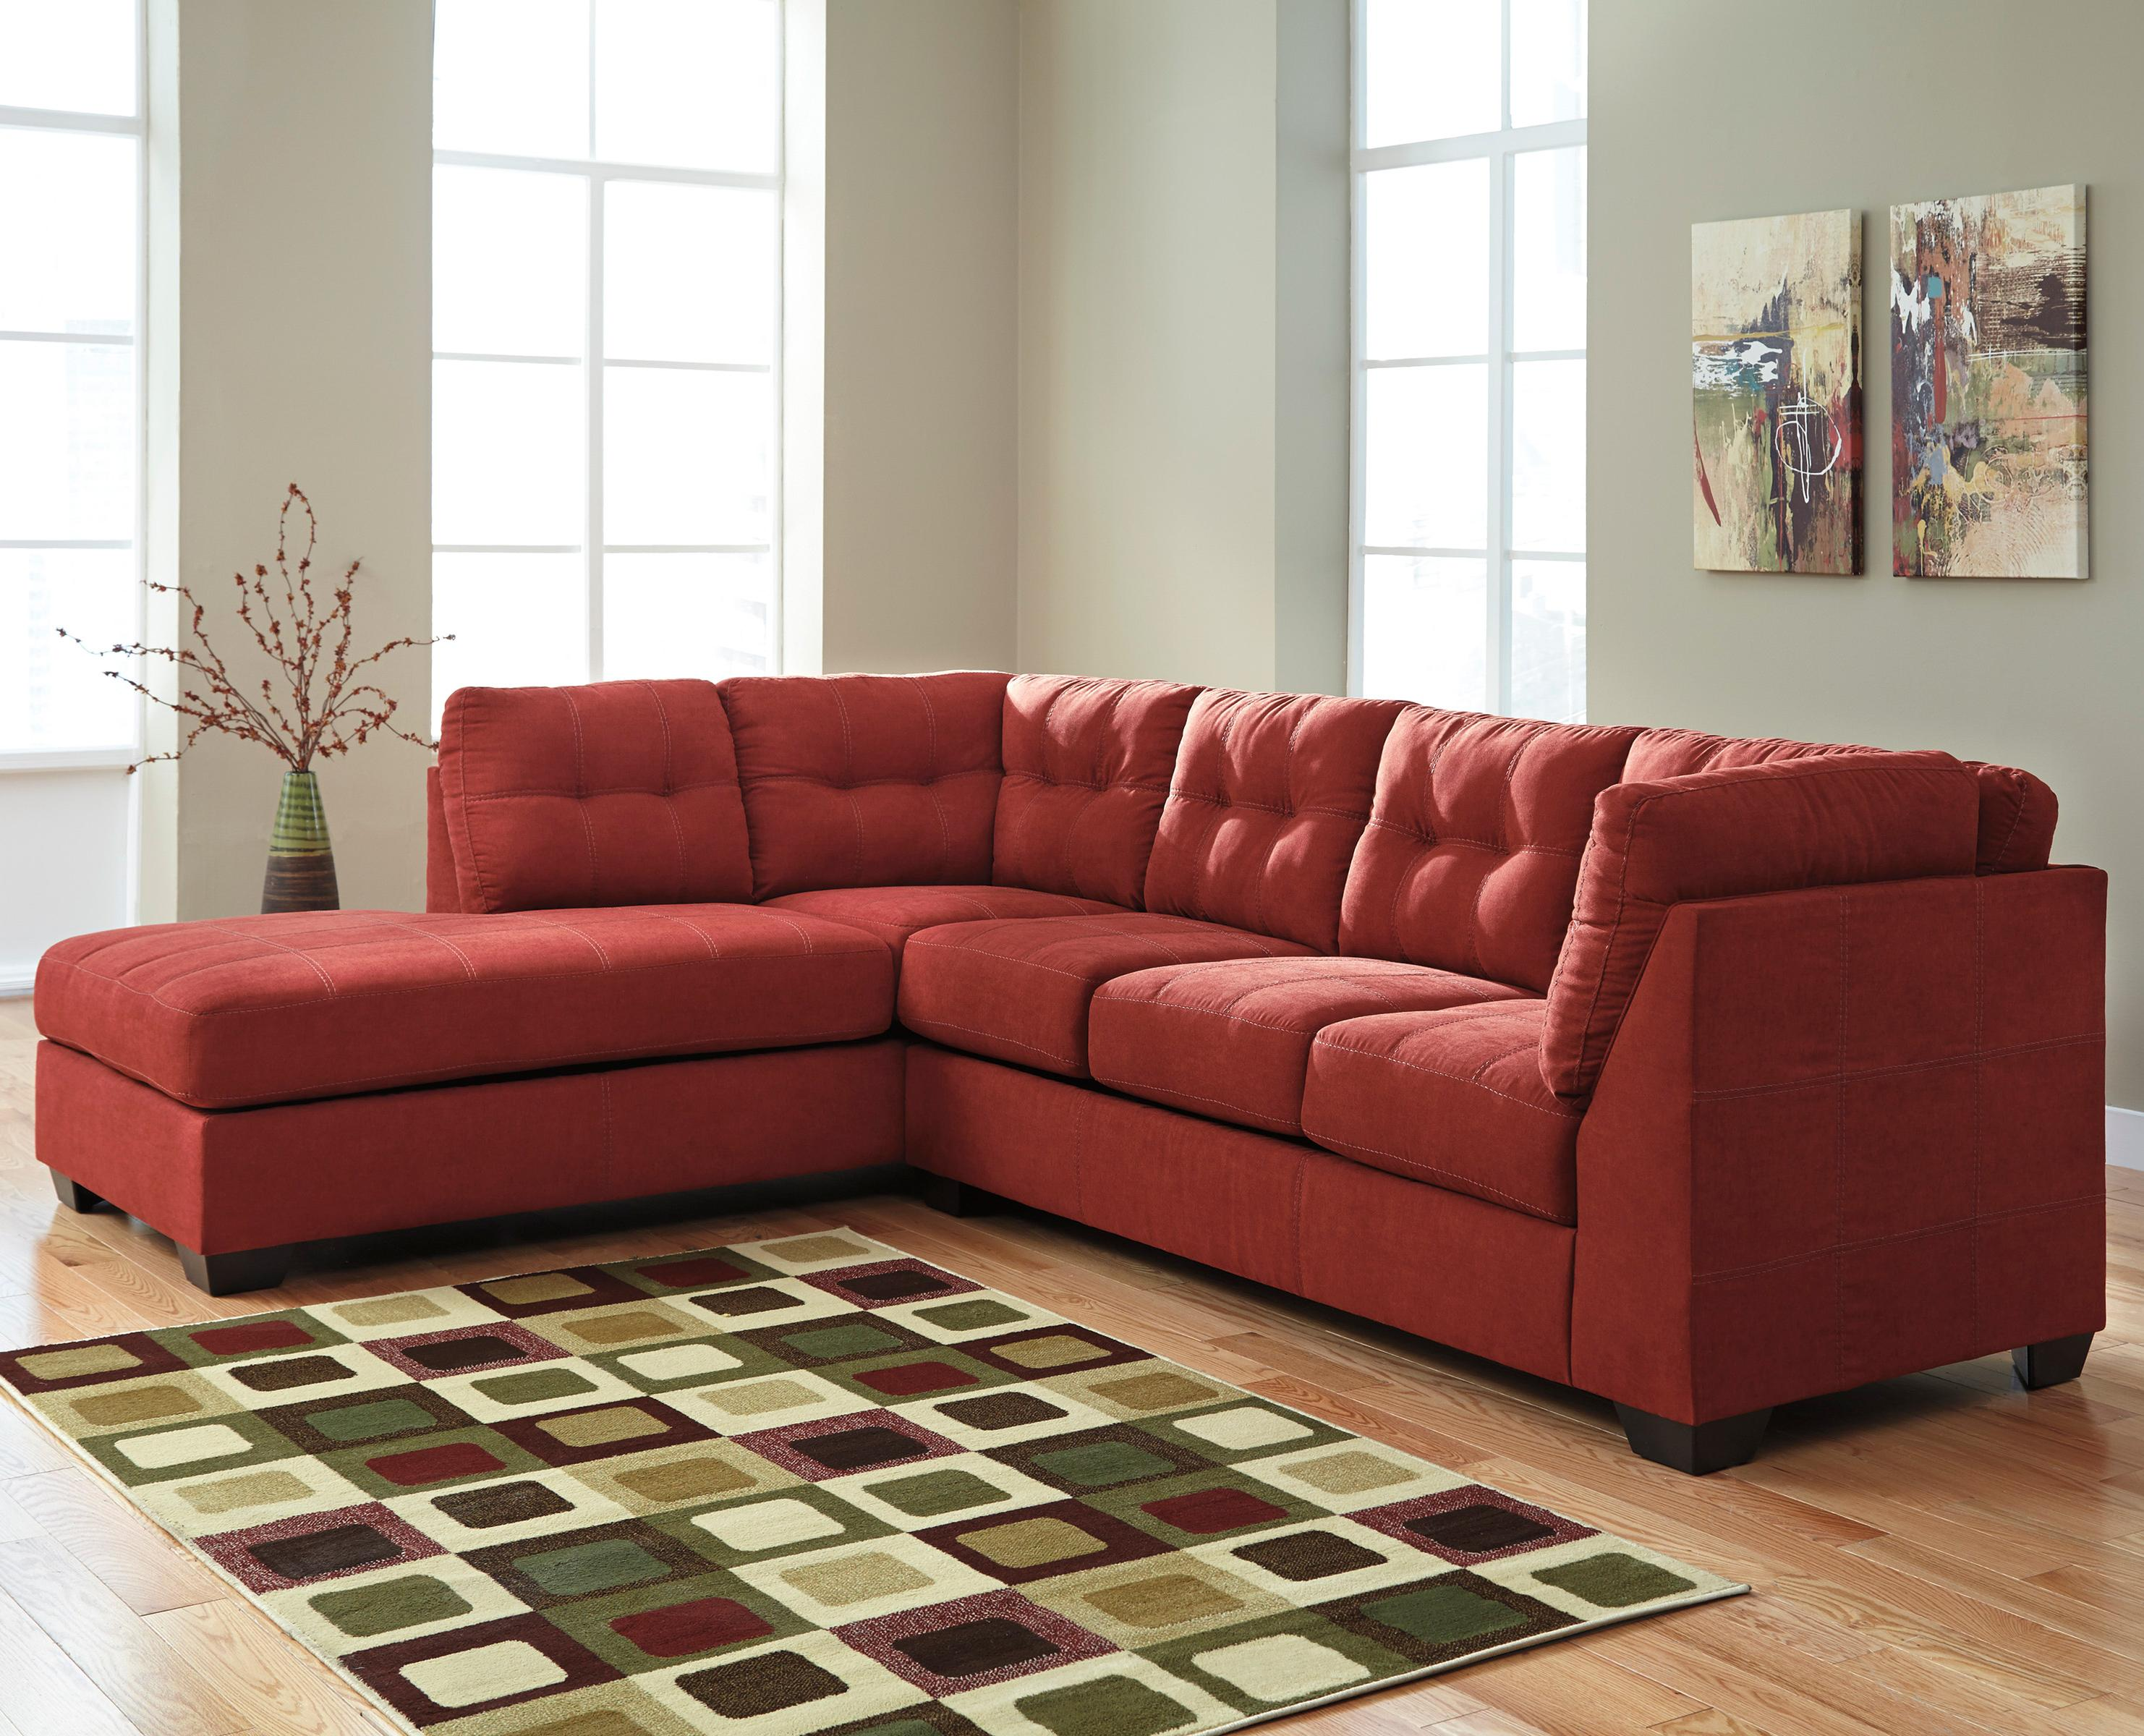 sienna sofa flexsteel leather sofas and loveseats benchcraft maier 2 piece sectional w sleeper left chaise